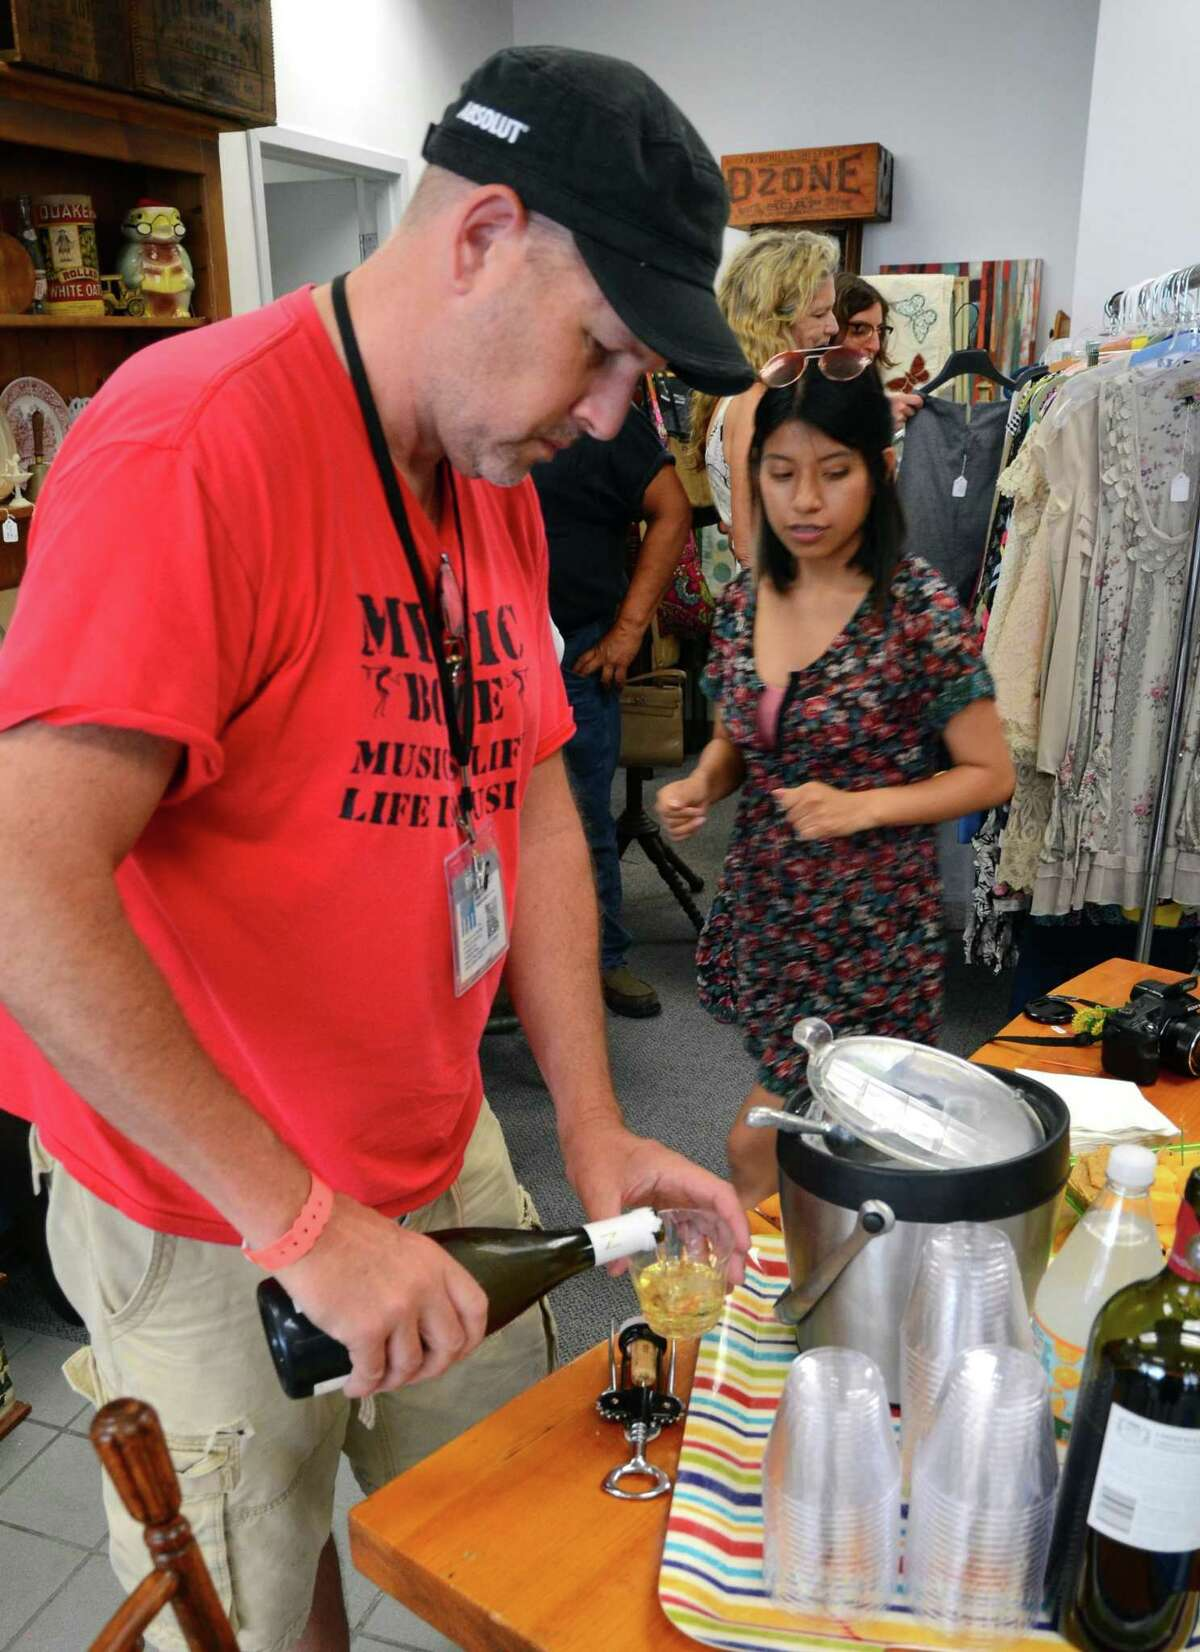 Mike Lauterborn pours a glass of wine during the City Lights Vintage sale on Main Street in Bridgeport, Conn., on Friday June 23, 2017. The sale continues Saturday June 24, 10AM-4 PM. Several other stores are taking part in the sale with City Lights Vintage. They include: The Bridgeport FLEA, 1127 Main St., Orbitz Studios 160 Fairfield Ave. and Academy Books and Record, 305 Fairfield Ave.